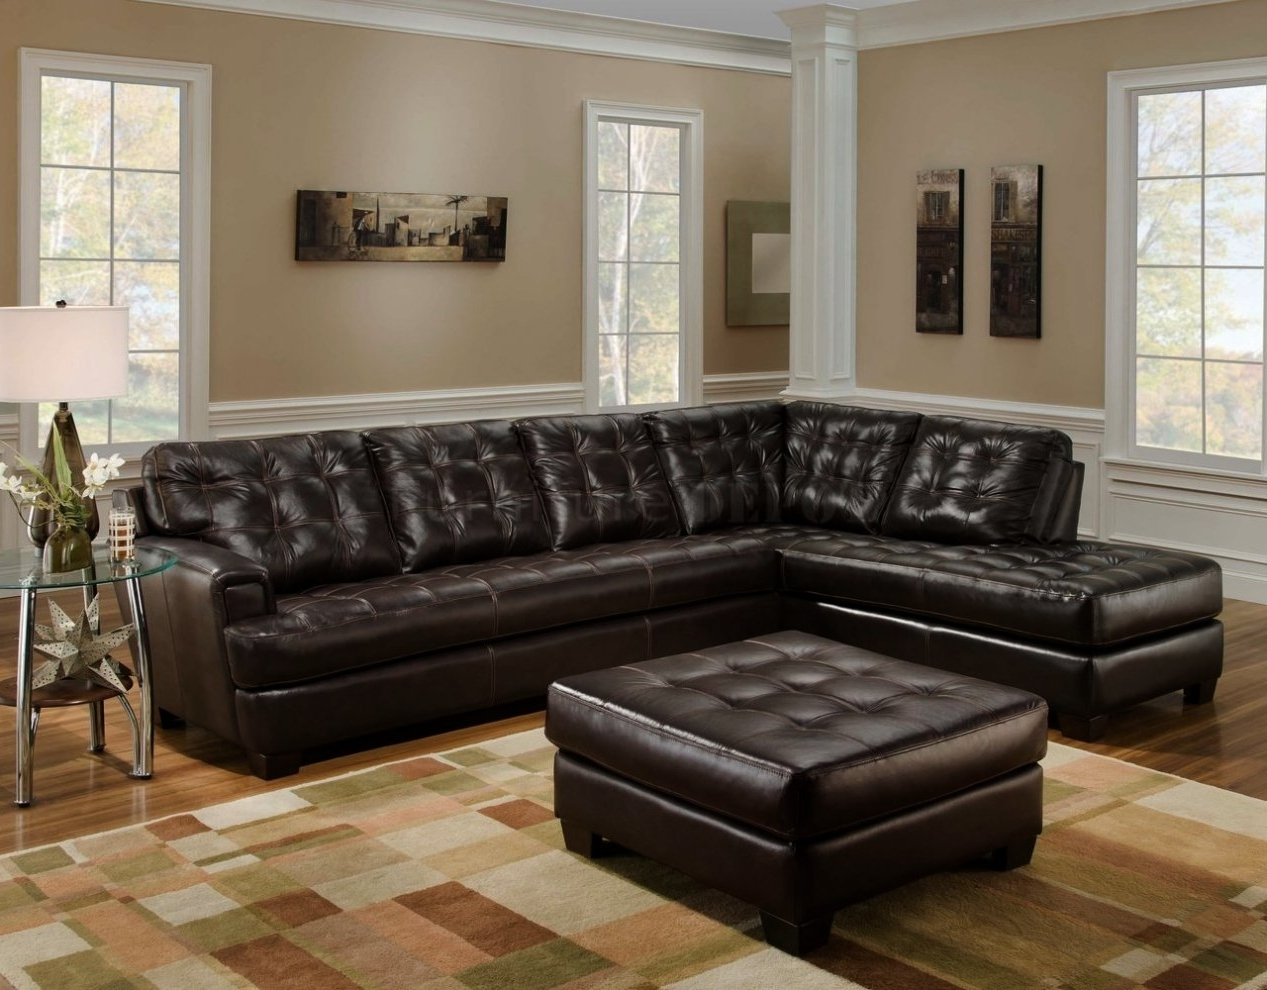 Most Recent Tufted Sectionals With Chaise With Regard To Dark Brown Leather Tufted Sectional Chaise Lounge Sofa With (View 4 of 15)